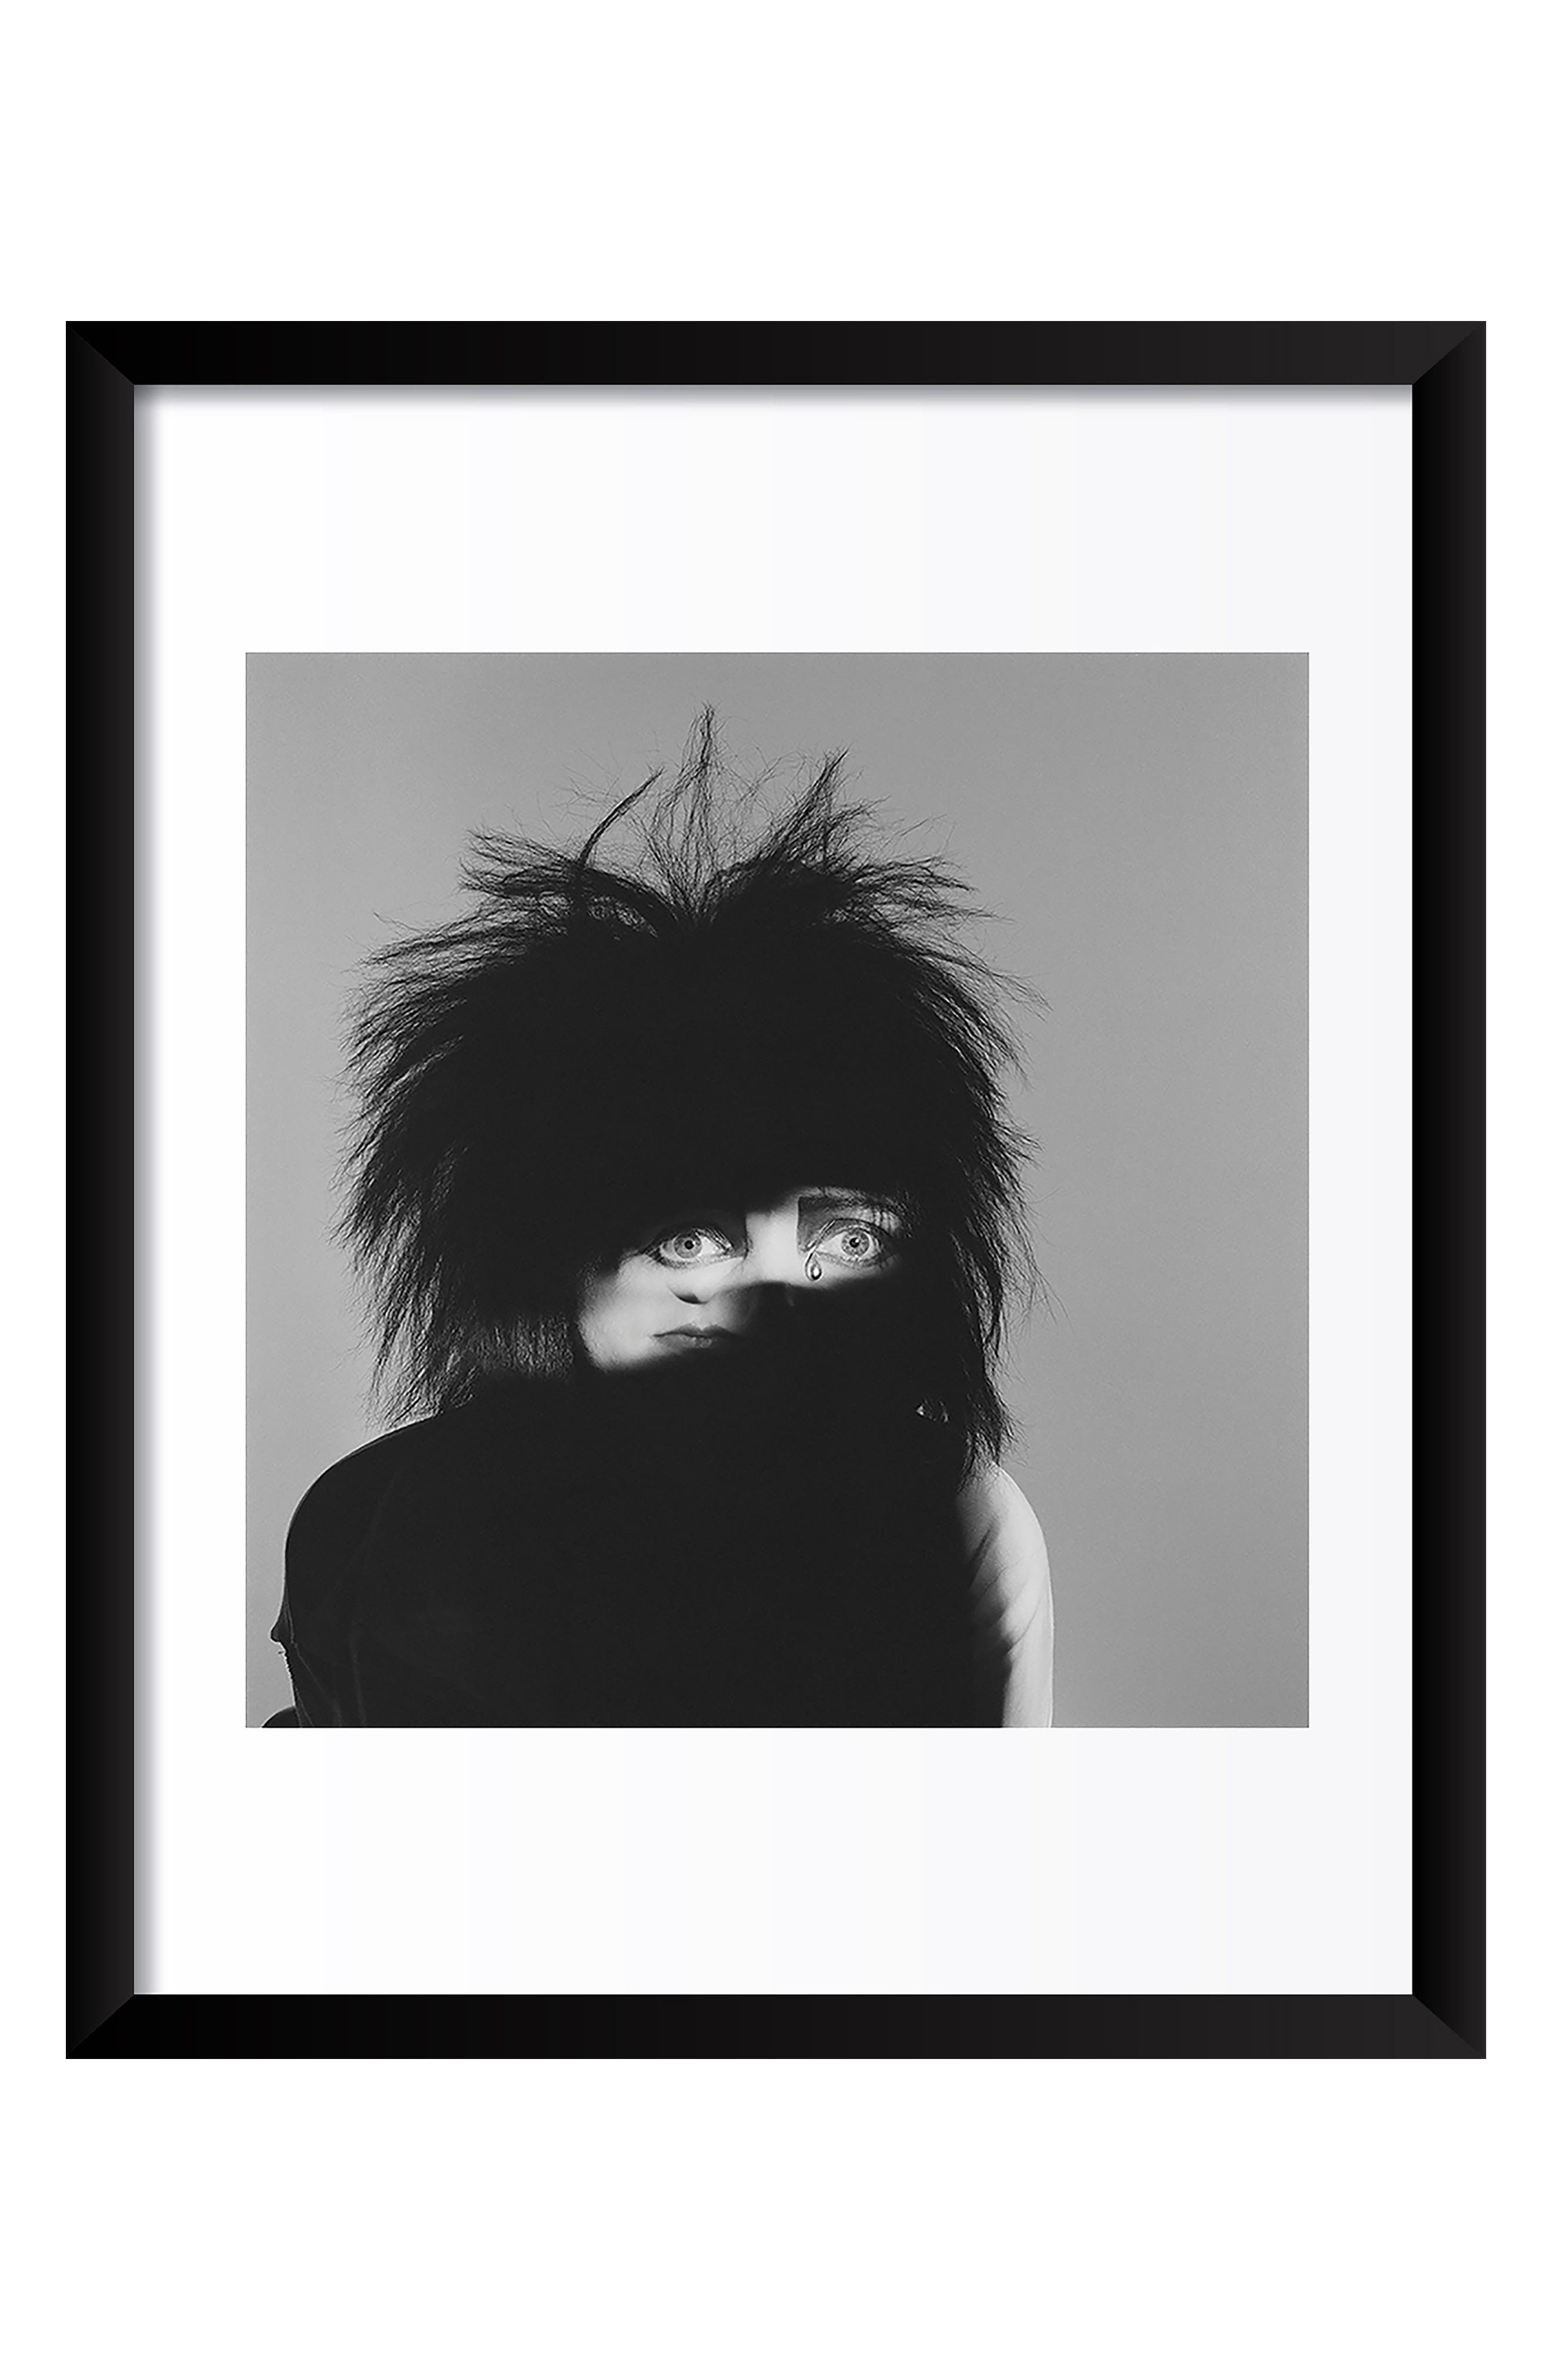 Main Image - Artography Limited Siouxsie Sioux Fine Art Print